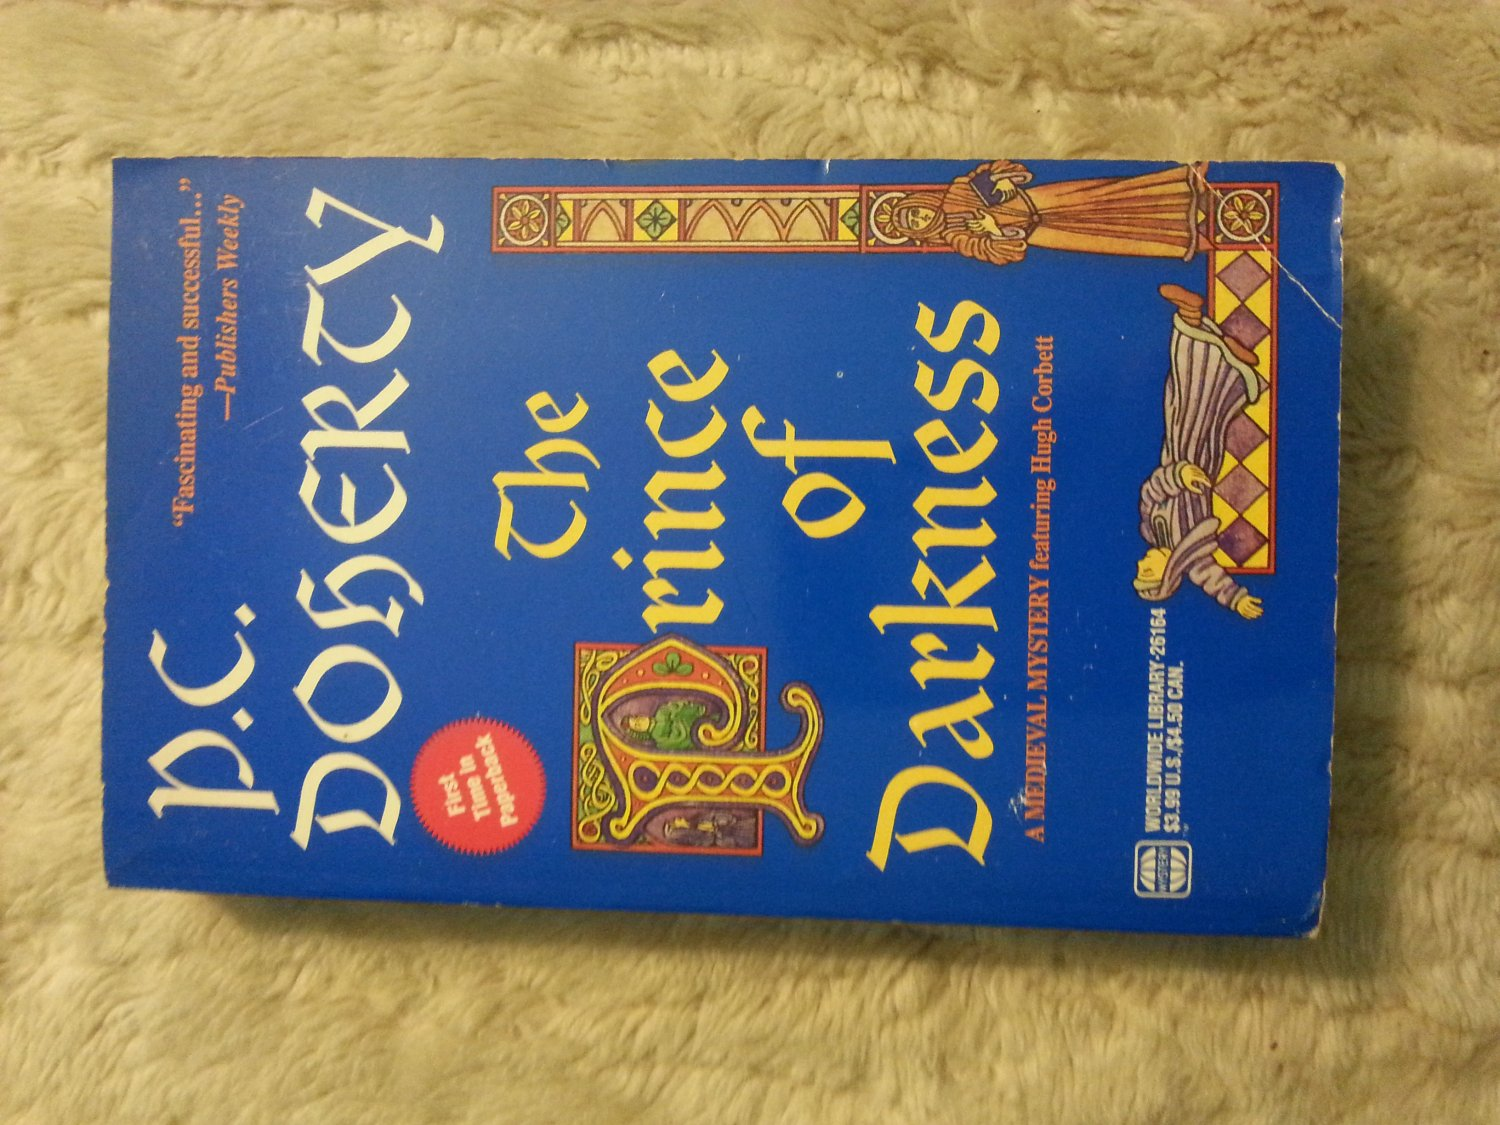 The Prince of Darkness (Hugh Corbett), P. C. Doherty, Paperback Book